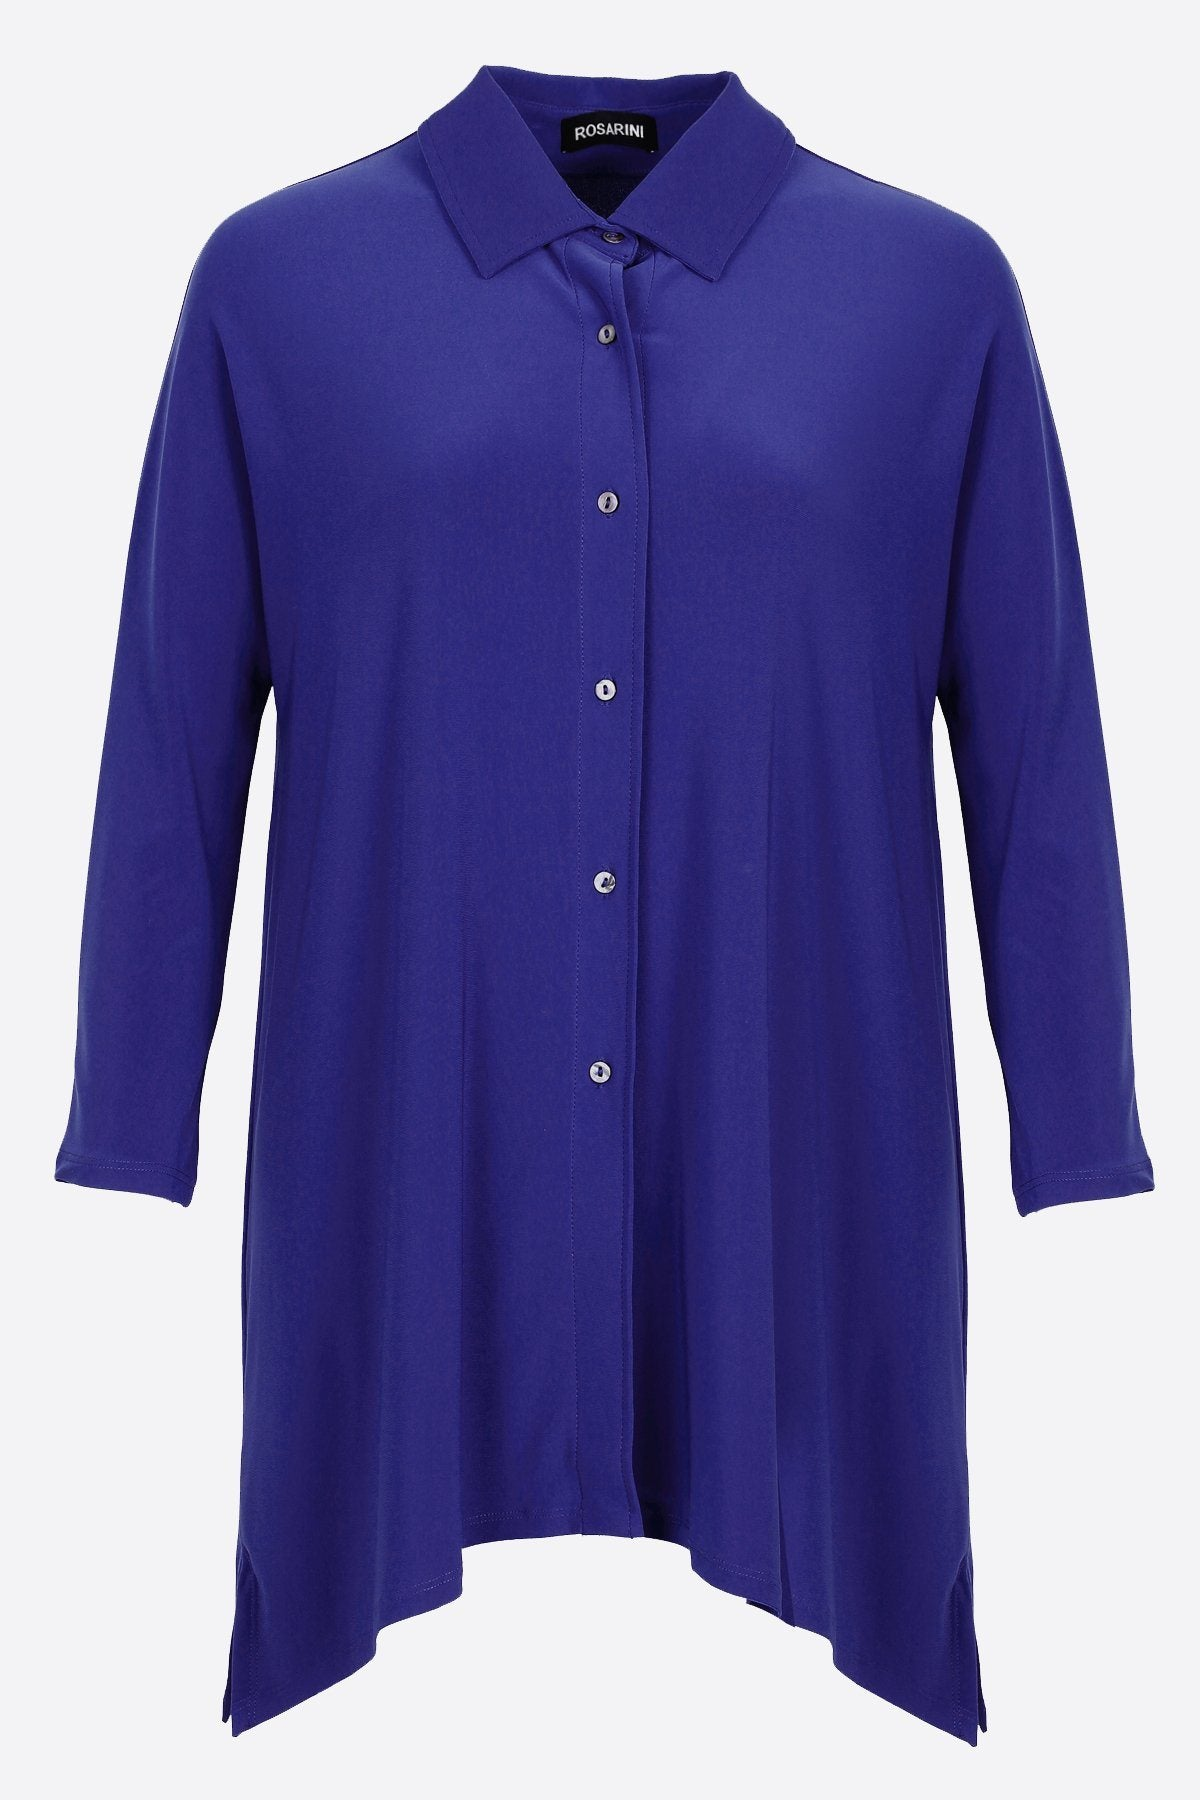 Button Shirt with Curved Hem Navy